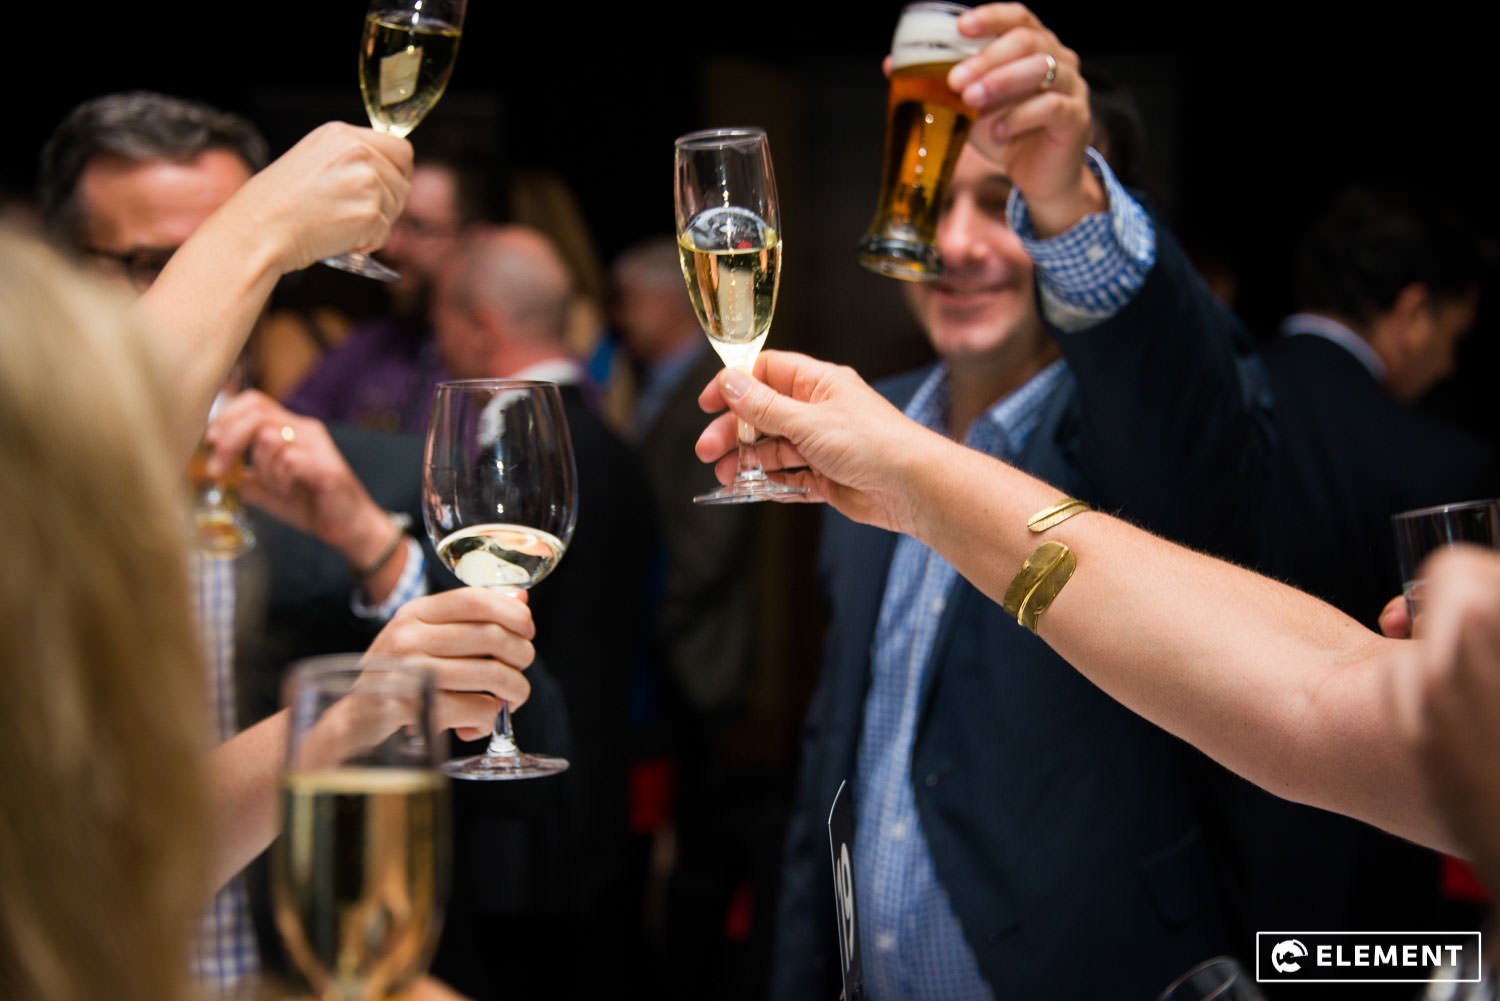 Friends hold up their champagne at an event.